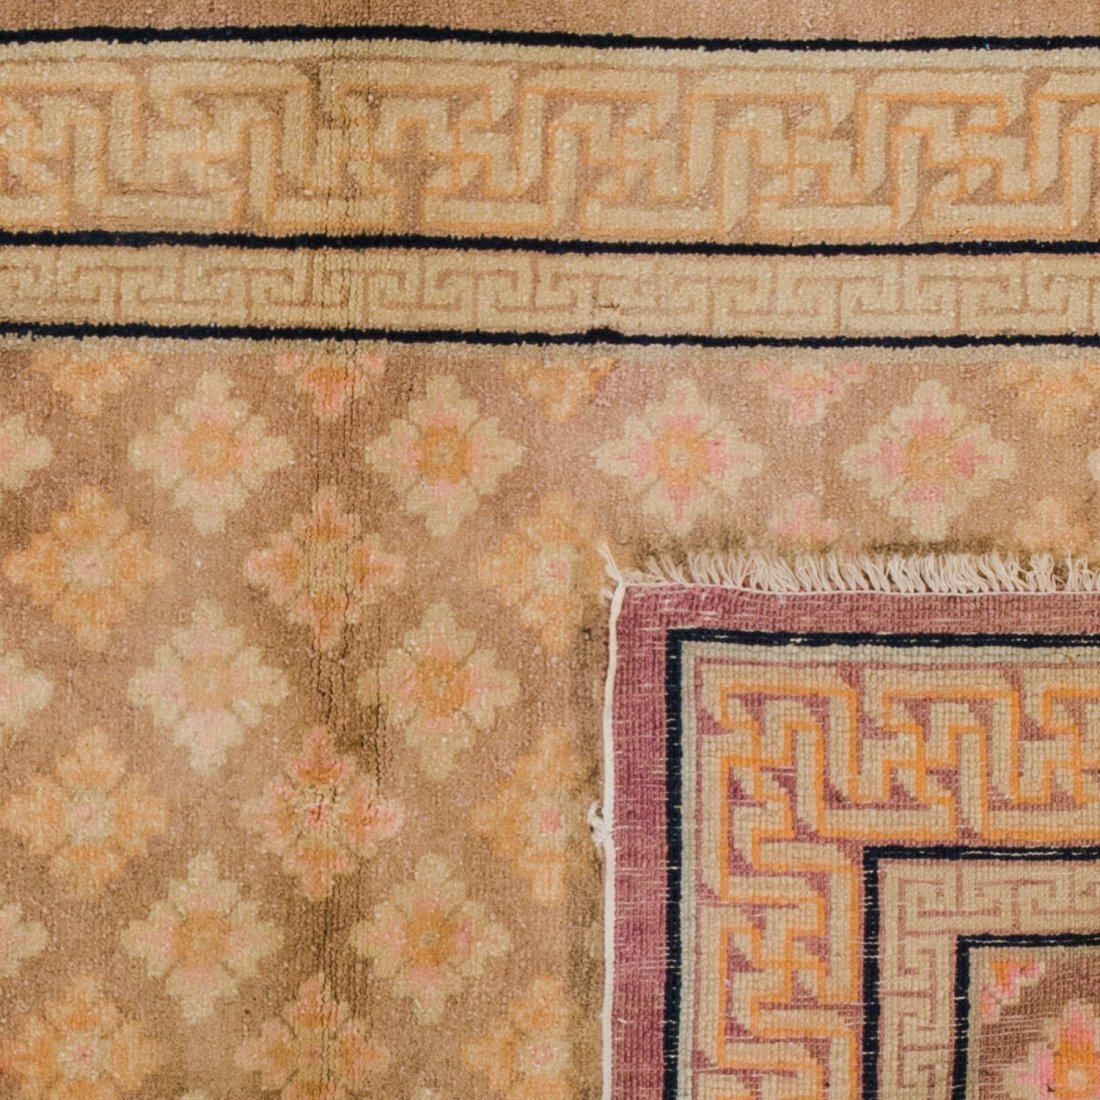 Antique Chinese Rug: 3'4'' x 5'4'' - 2